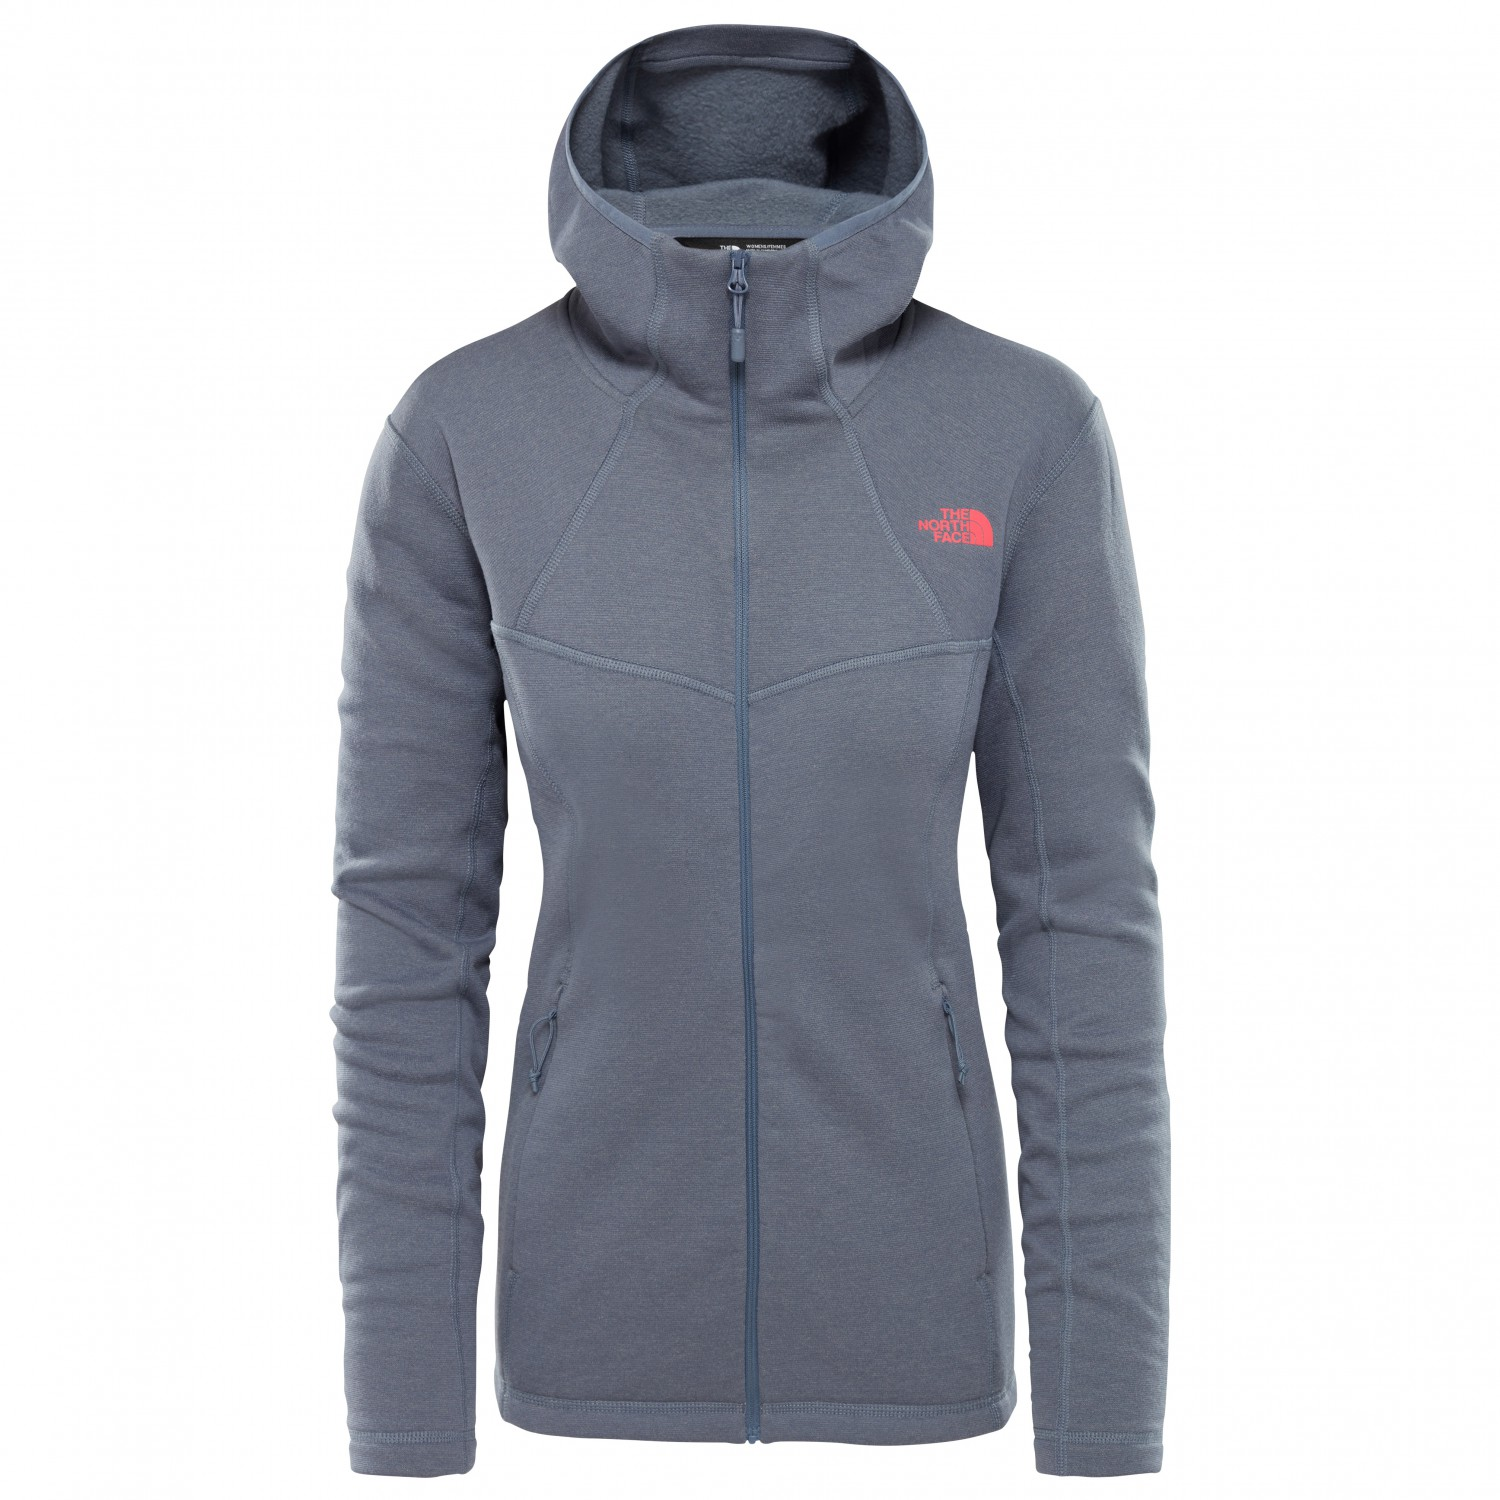 Jacket Hoody Wool Inlux Face North Fz Women's The wHSPfxqx